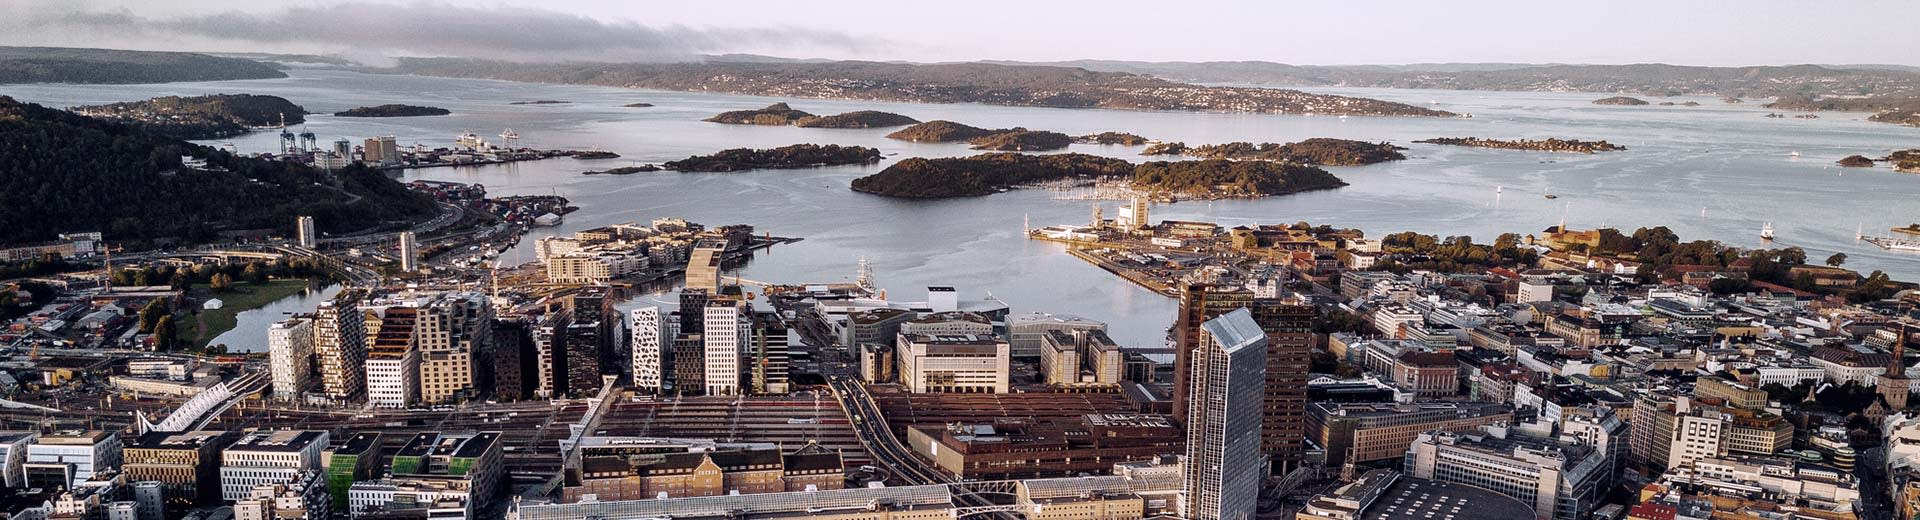 The tall buildings of Oslo overlook the coast of Norway